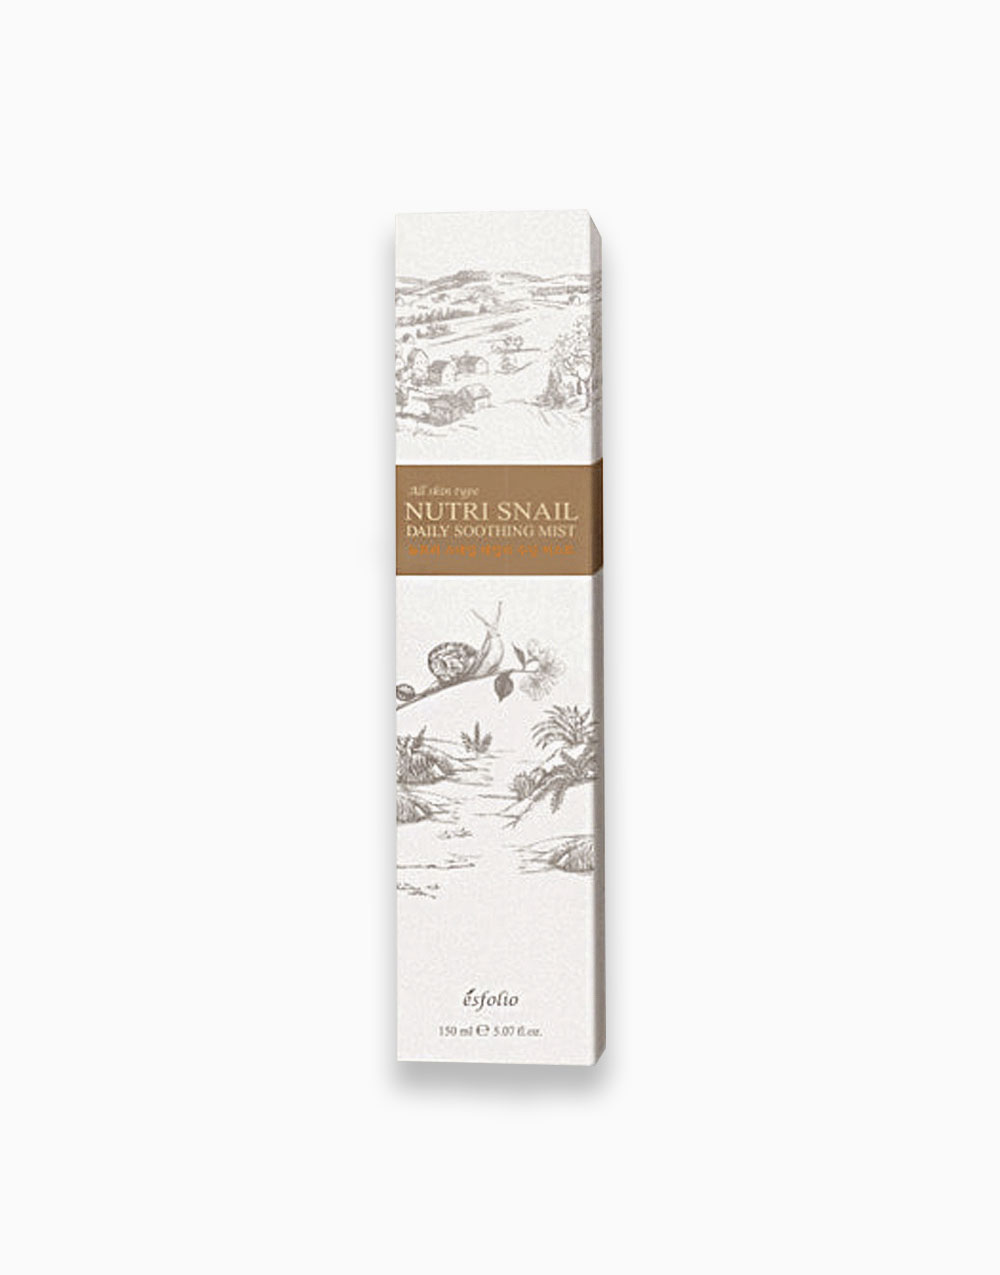 Nutri Snail Daily Soothing Mist by Esfolio